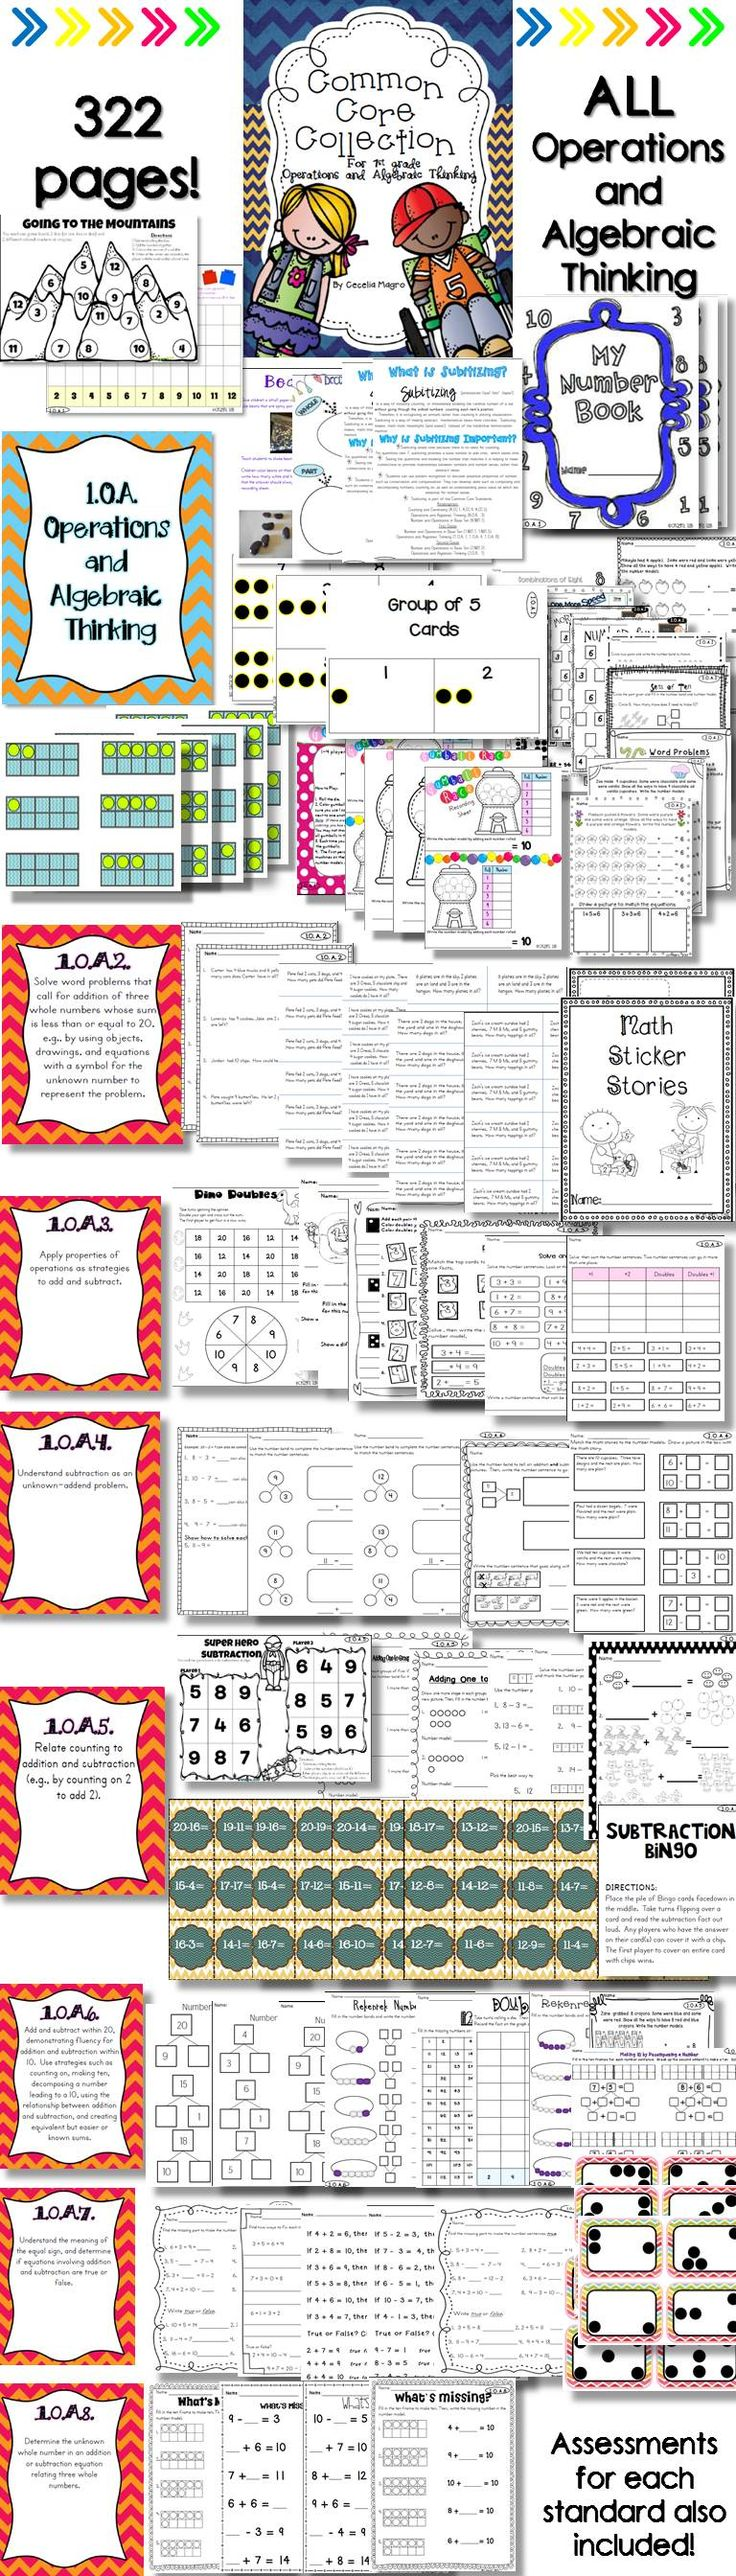 Jam packed with 322 pages of work, activities, games, teaching resources, centers, assessments ALL for first grade Operations and Algebraic Thinking!